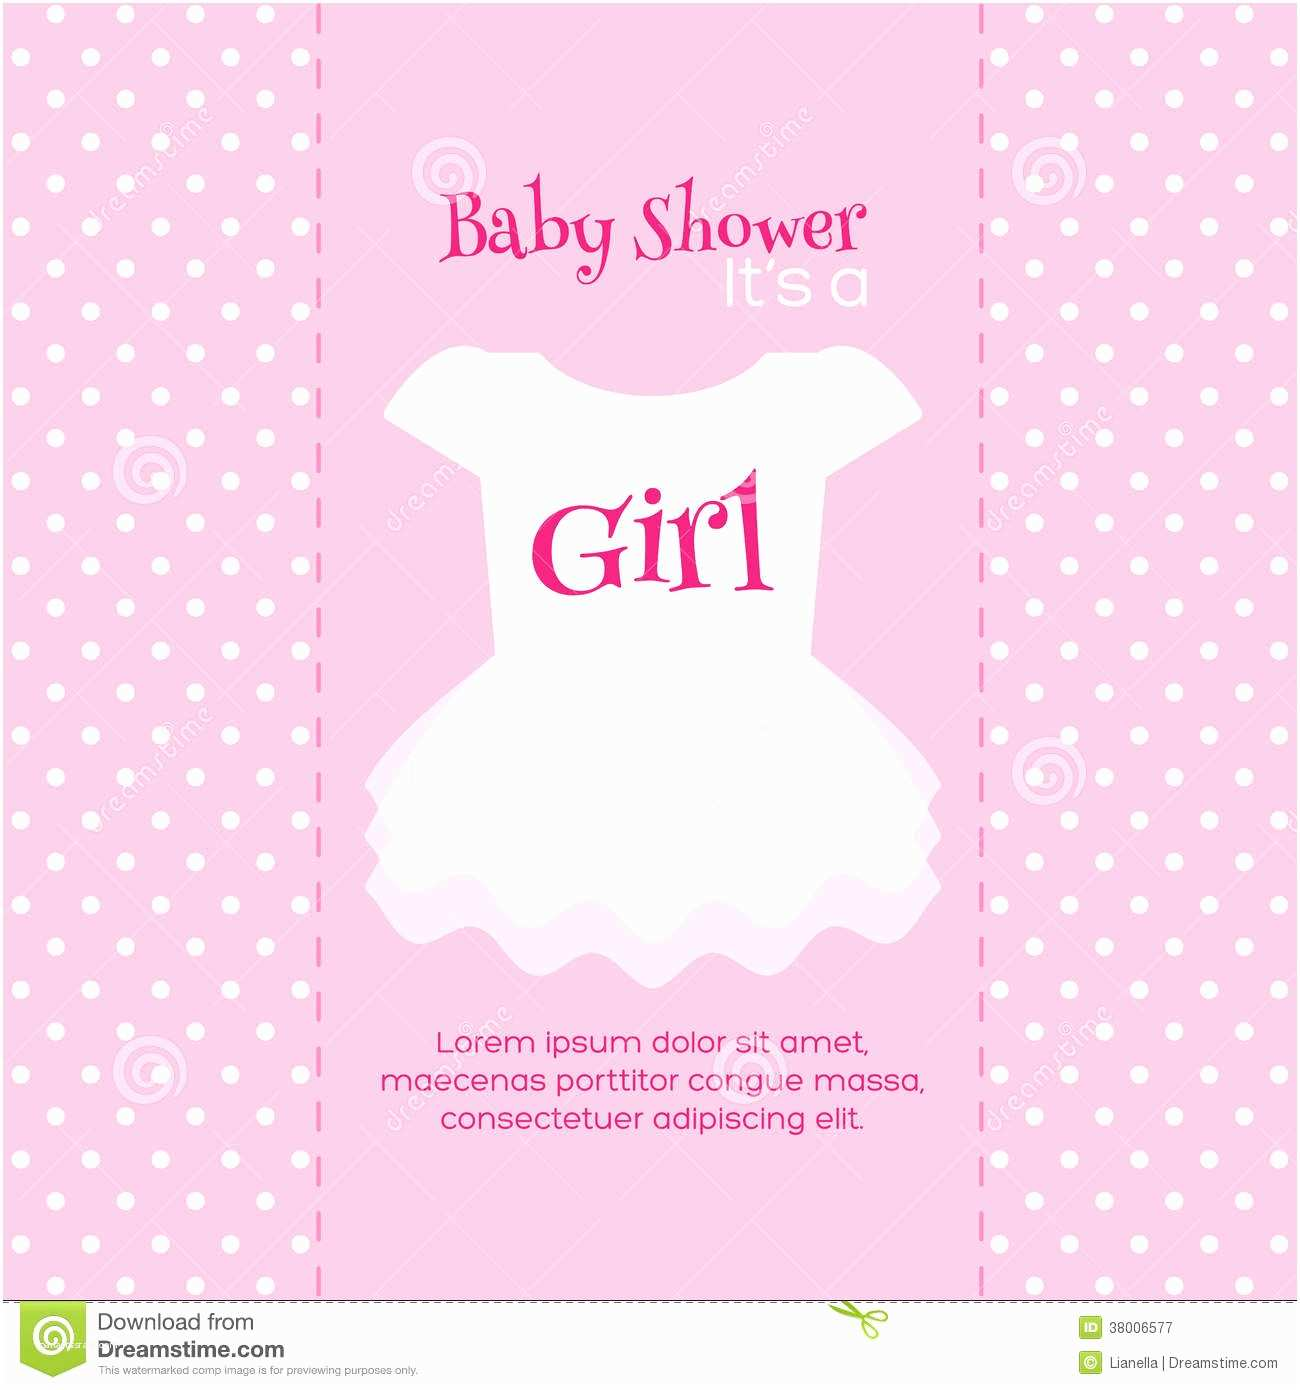 Baby Shower Invitation Examples Girl Baby Shower Invitations Templates